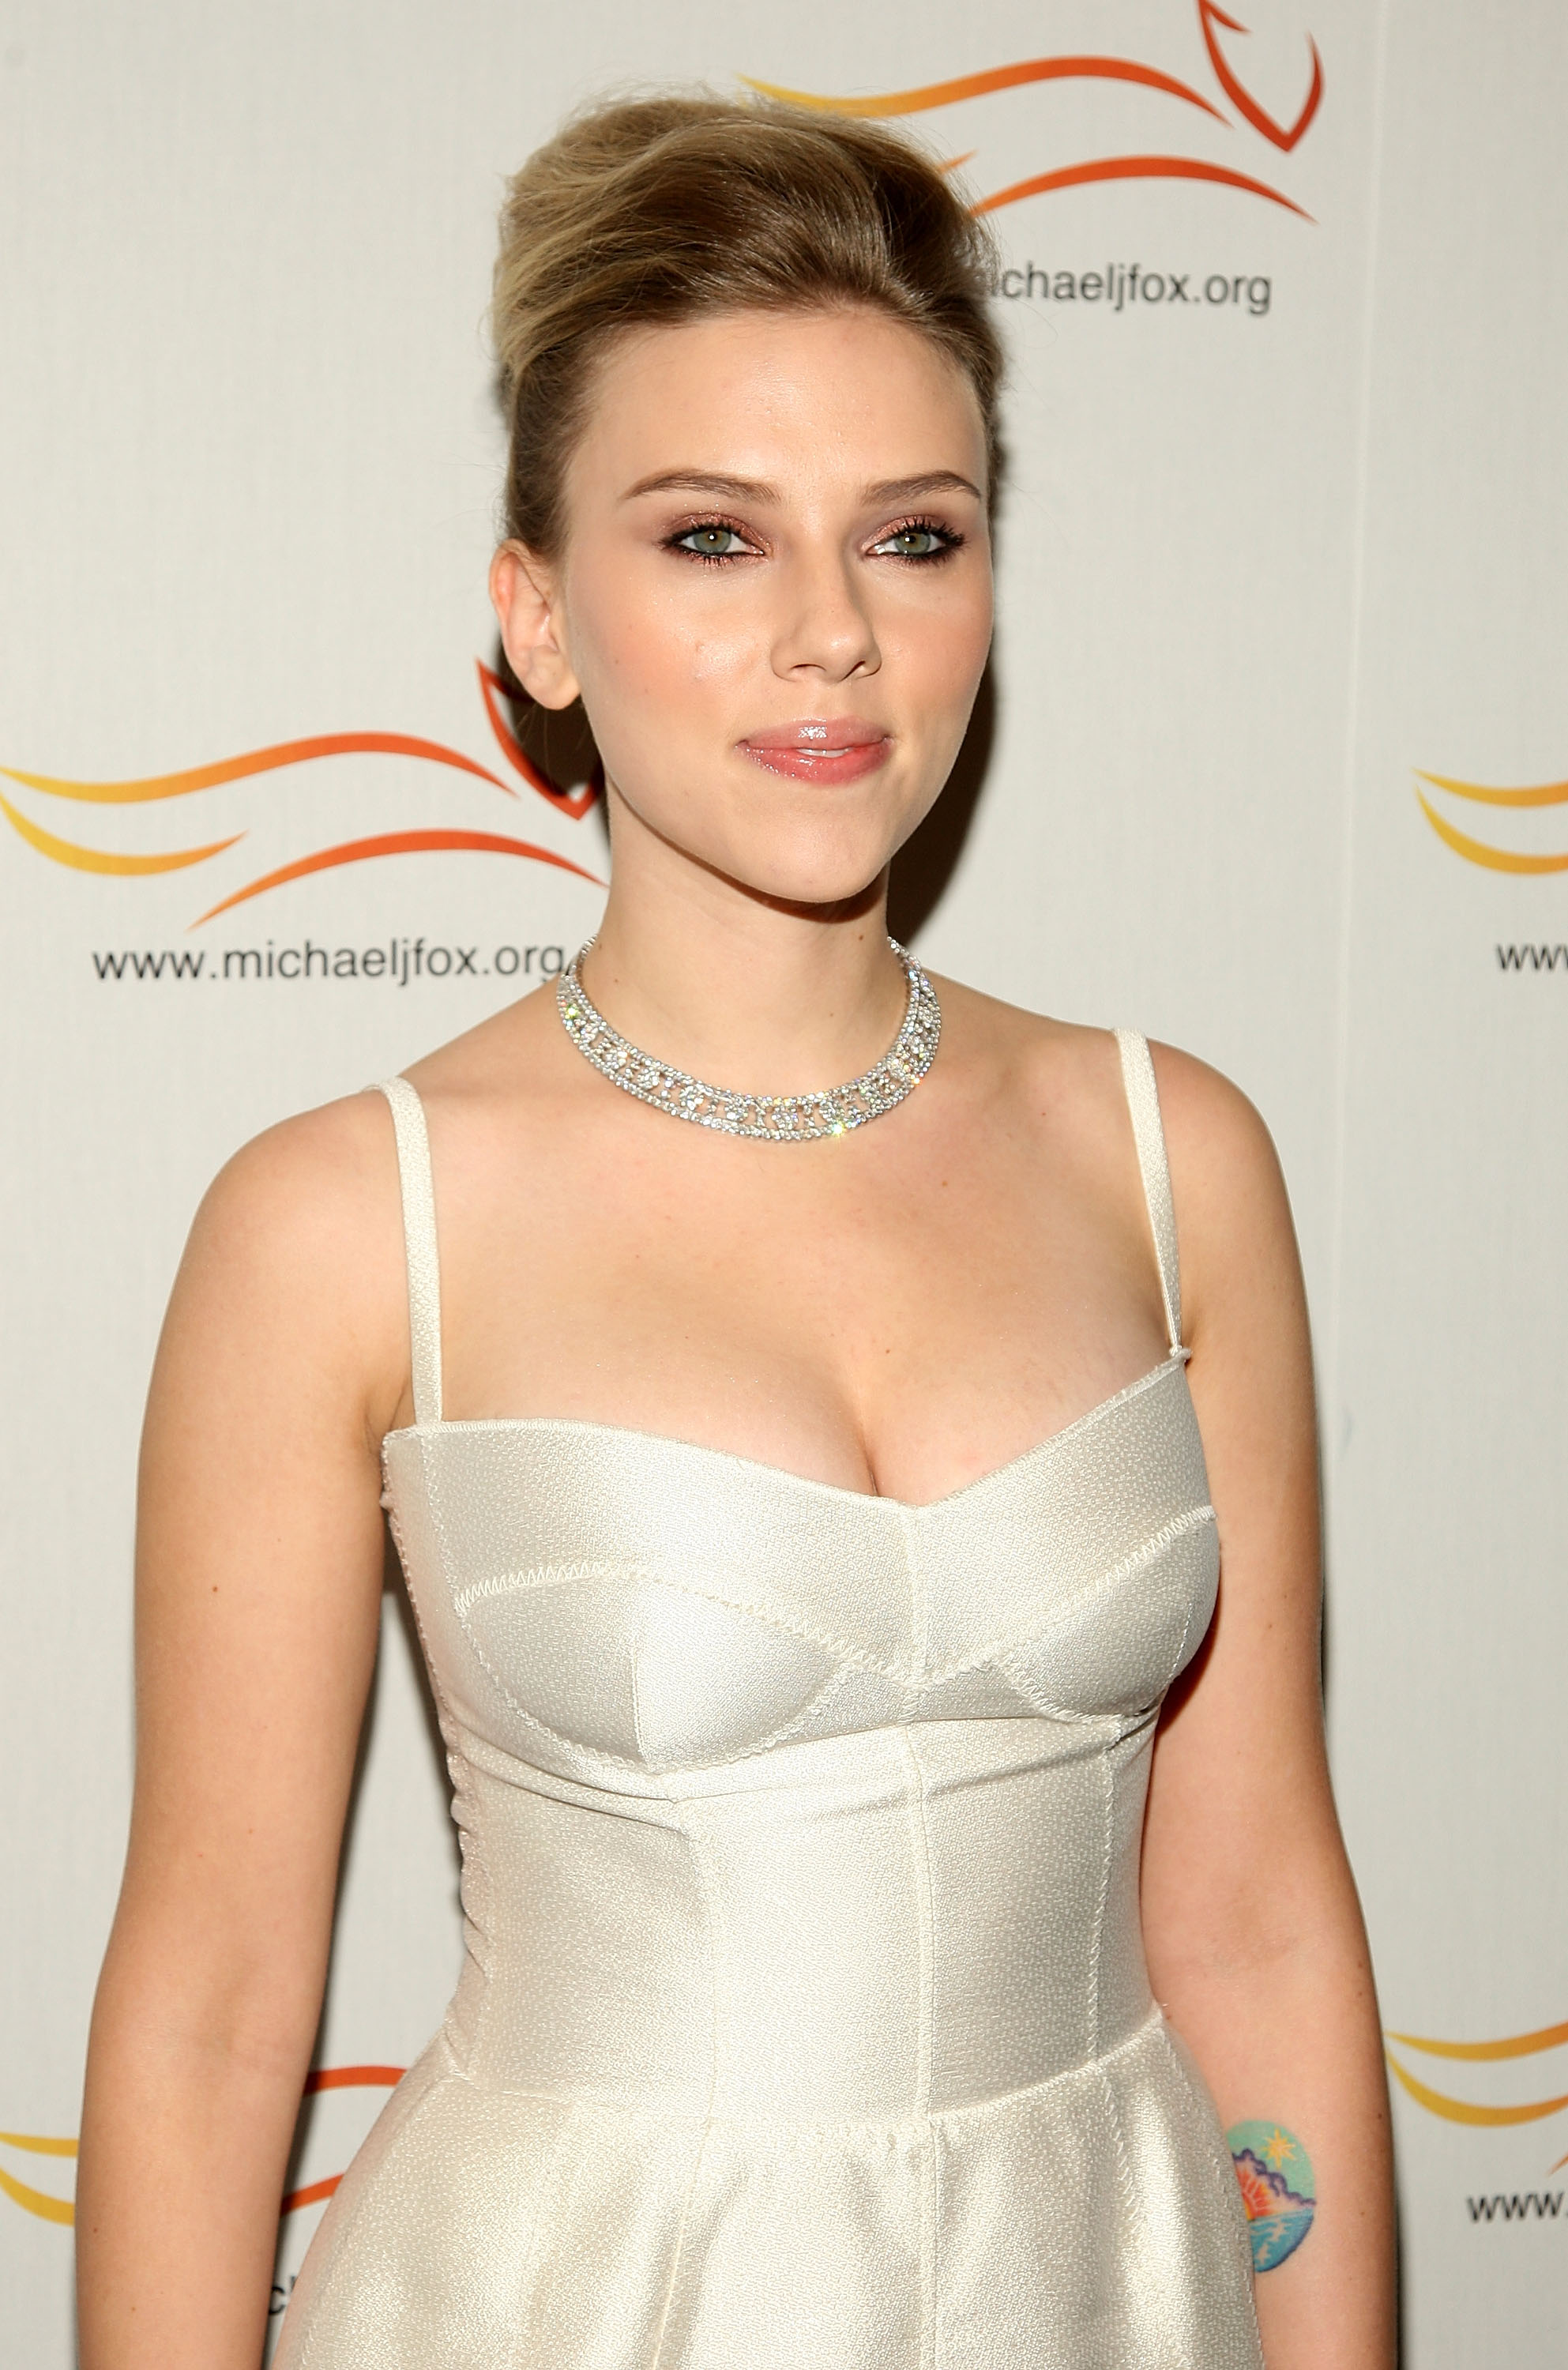 54691_Celebutopia-Scarlett_Johansson-A_Funny_Thing_Happened_on_the_Way_to_Cure_Parkinsons-05_122_438lo.jpg